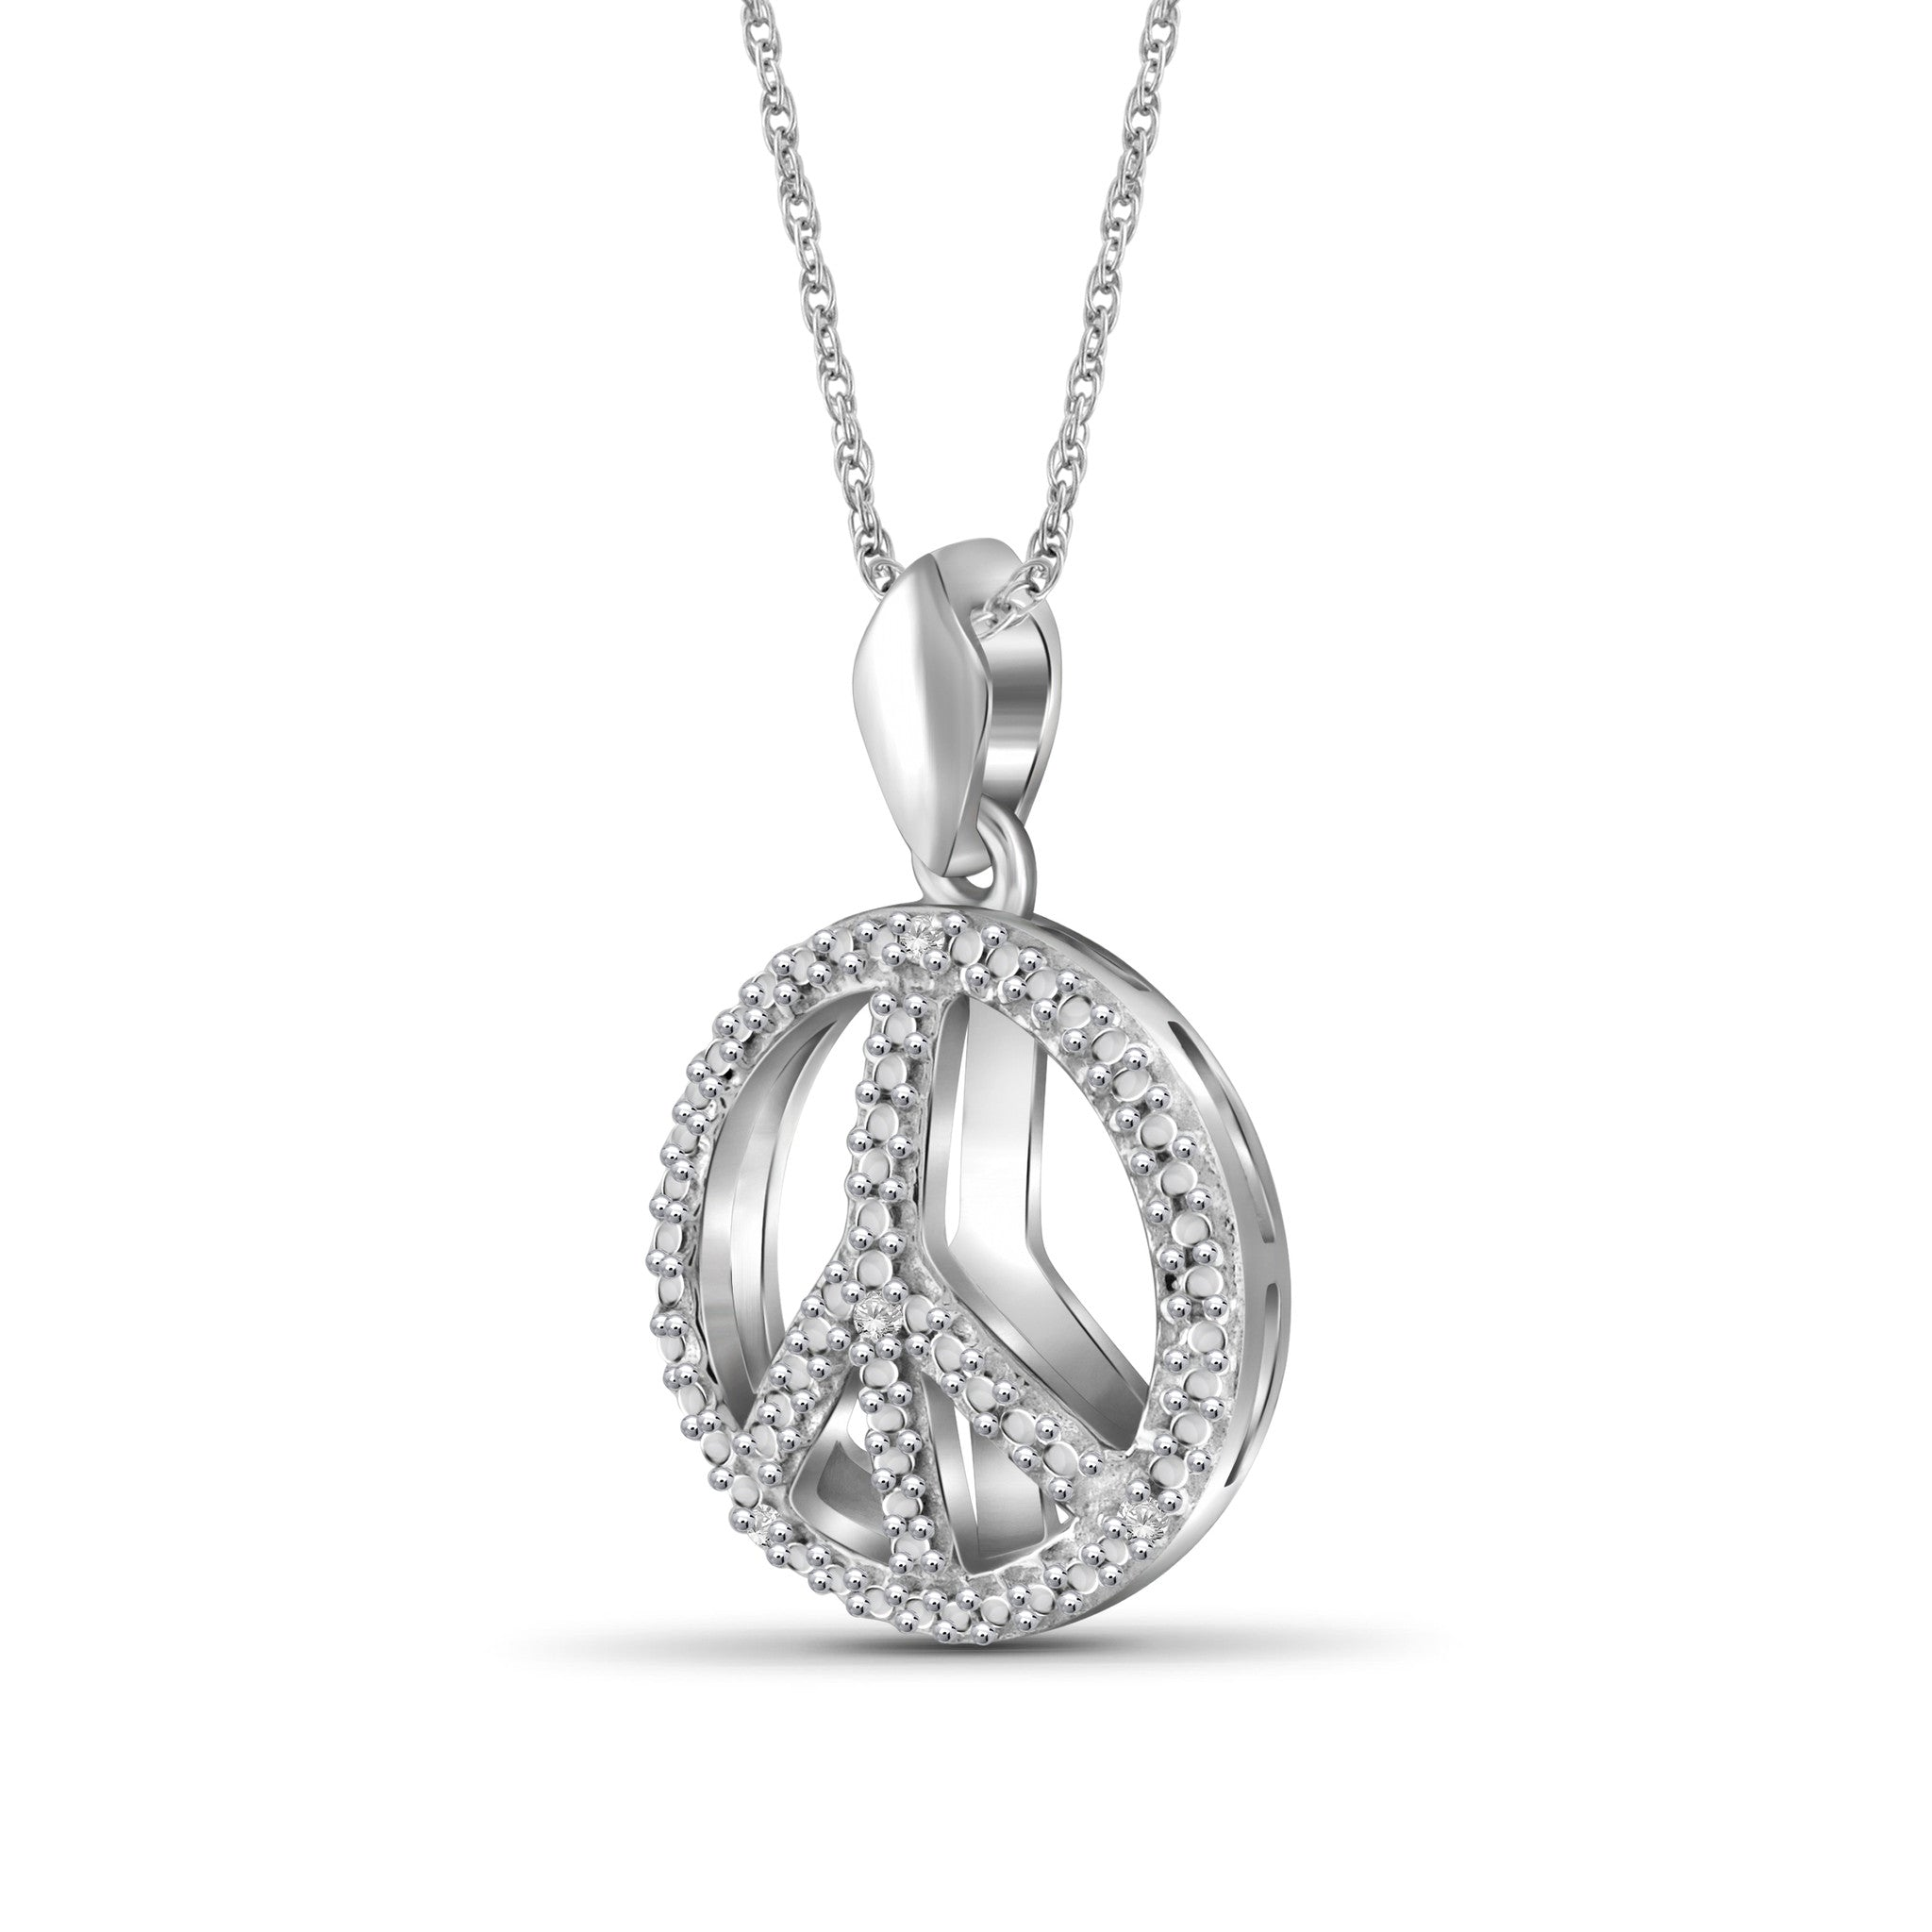 cream en strawberry silver peace goldplated necklace sterling detailausschnitt kugelkette ladies gold pendant